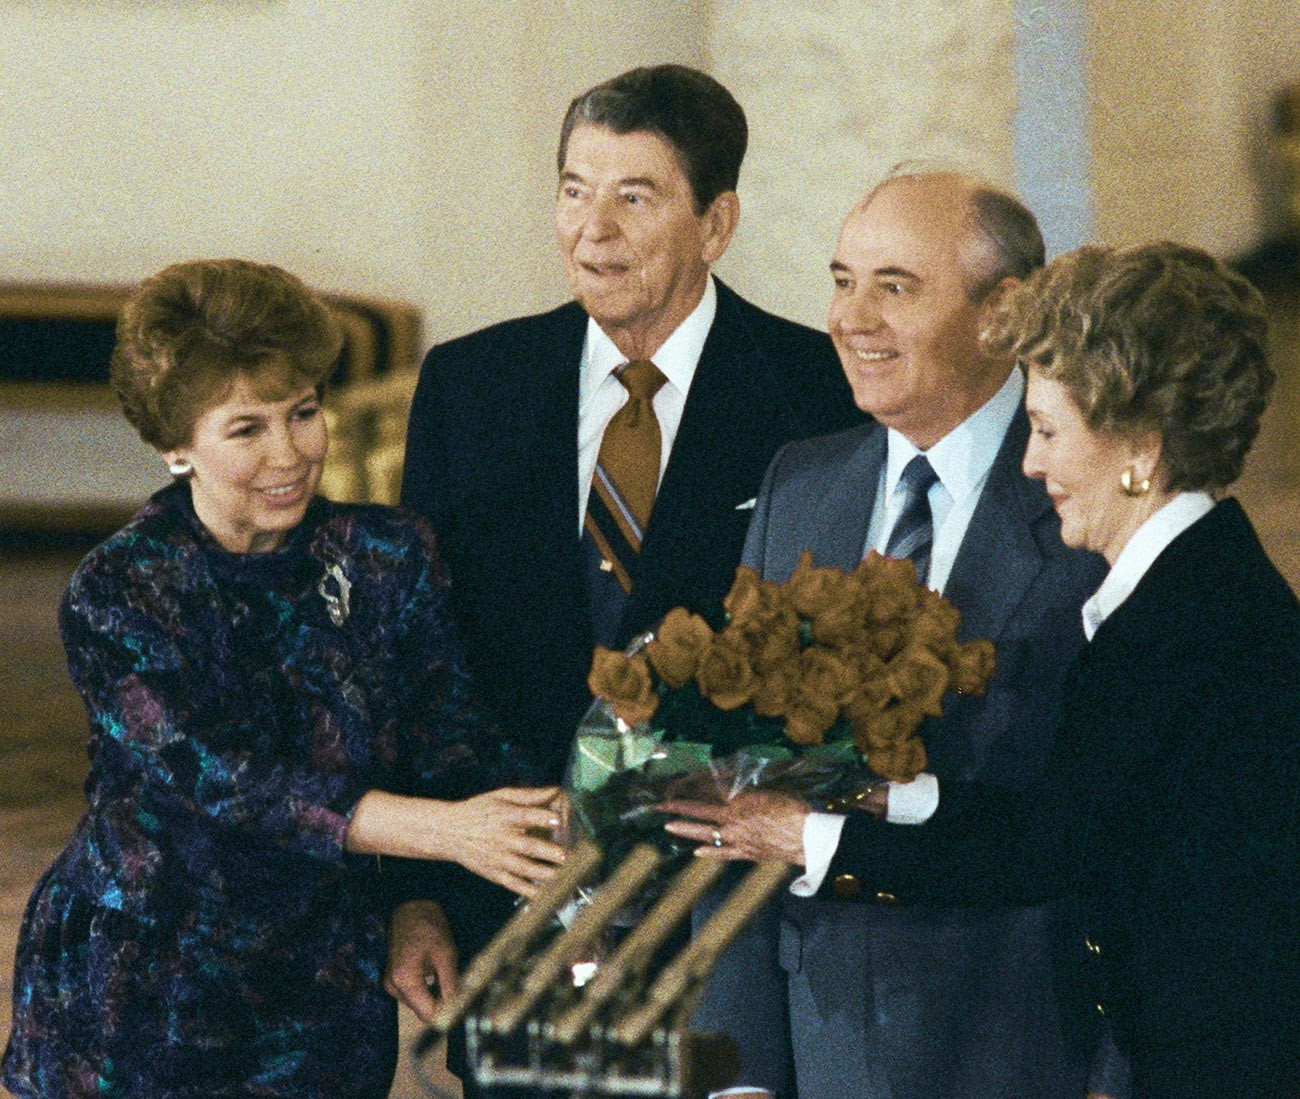 General Secretary of the Central Committee of the CPSU Mikhail Gorbachev (second from right) and the US President Ronald Reagan (center) with their spouses at a meeting in the Kremlin during the visit of R. Reagan in the USSR in 1988